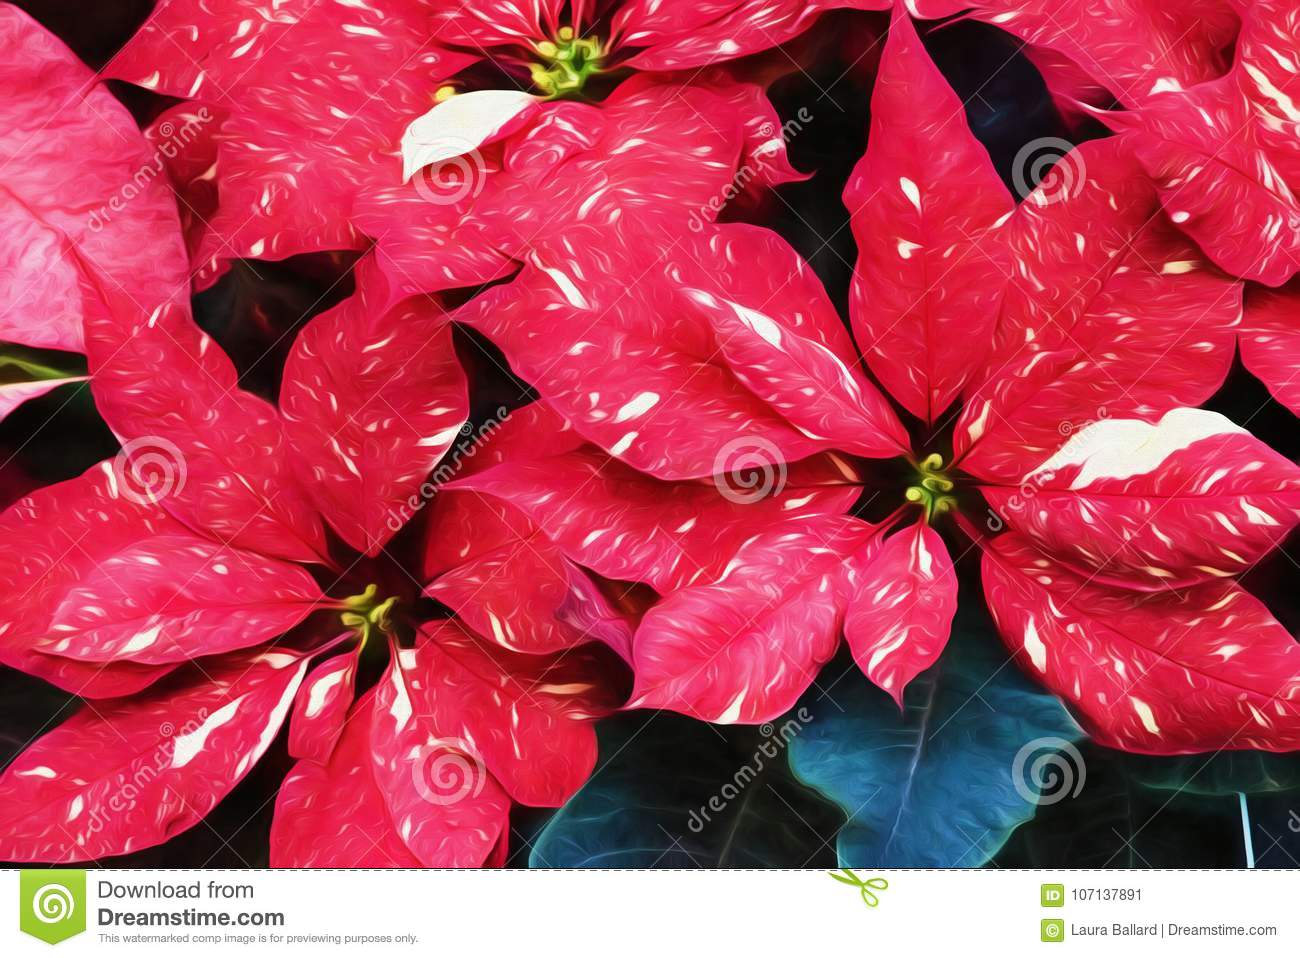 Red glitter poinsettia flower stock image image of textured leaf download red glitter poinsettia flower stock image image of textured leaf 107137891 izmirmasajfo